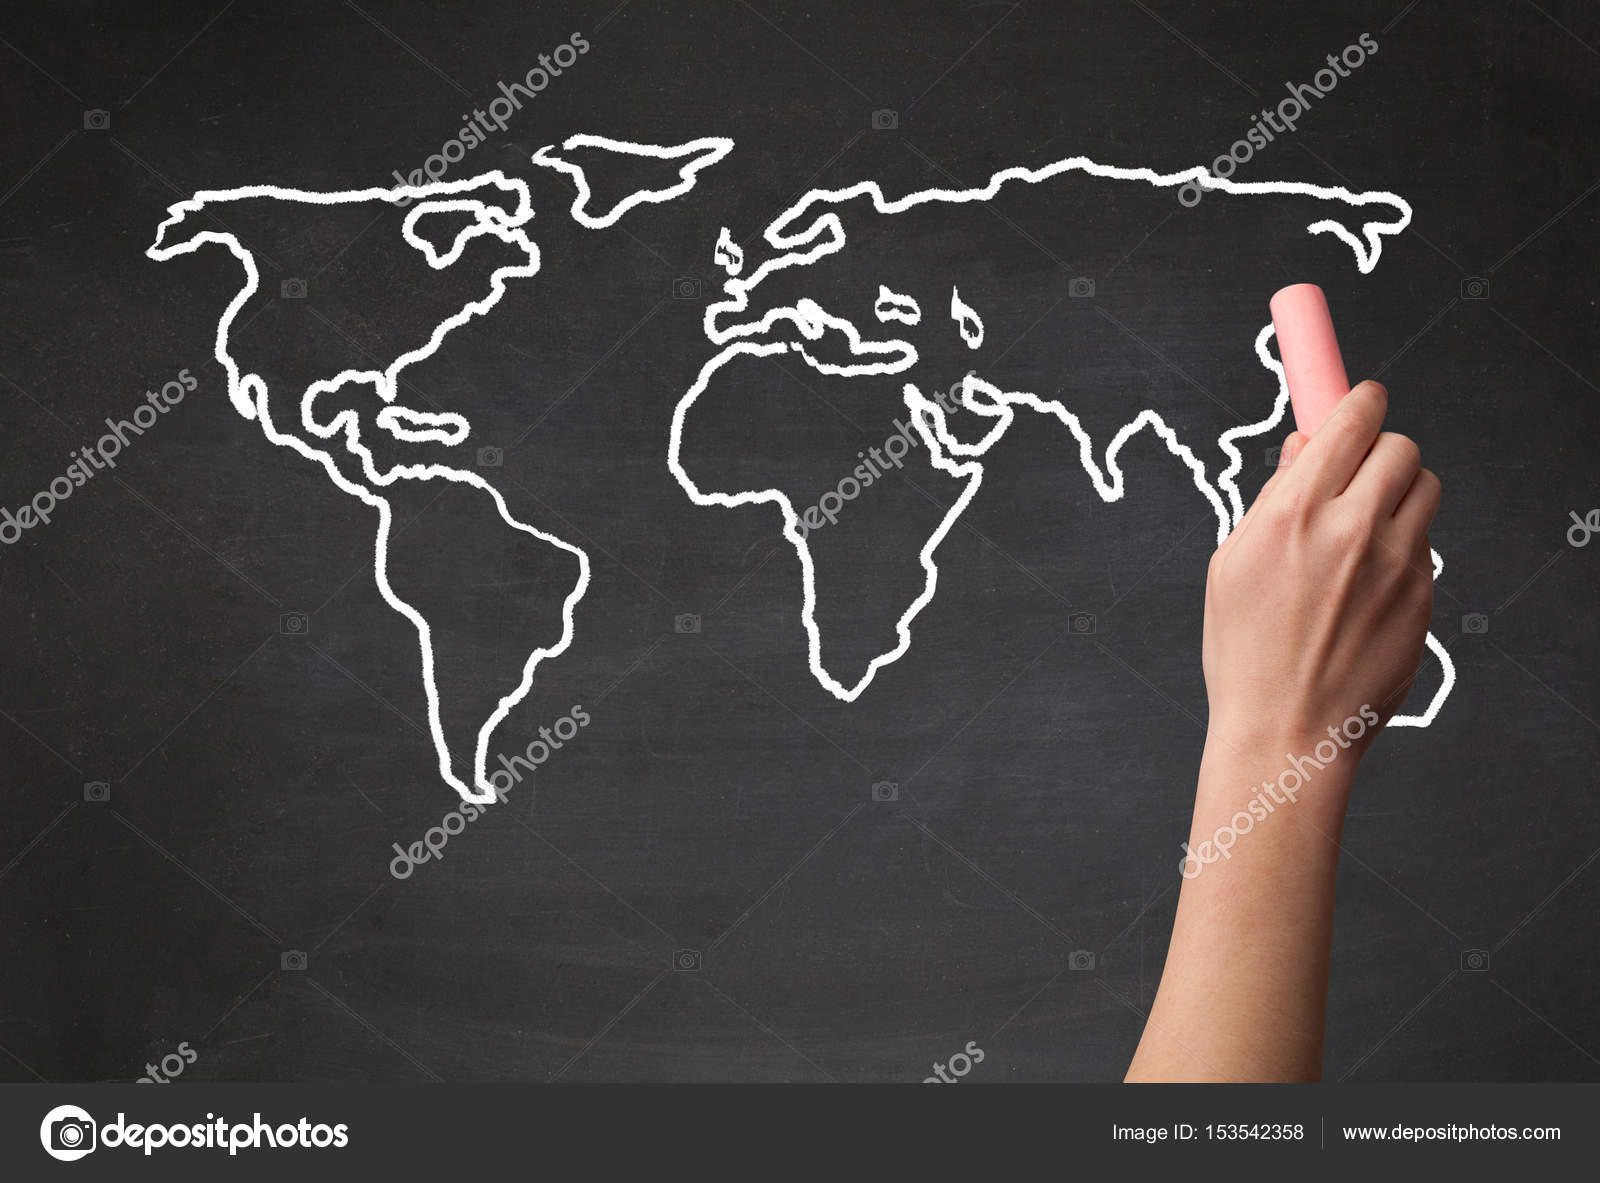 Adult drawing world map on chalkboard stock photo ra2studio a teacher drawing the map of the world on a blackboard with a chalk photo by ra2studio gumiabroncs Image collections